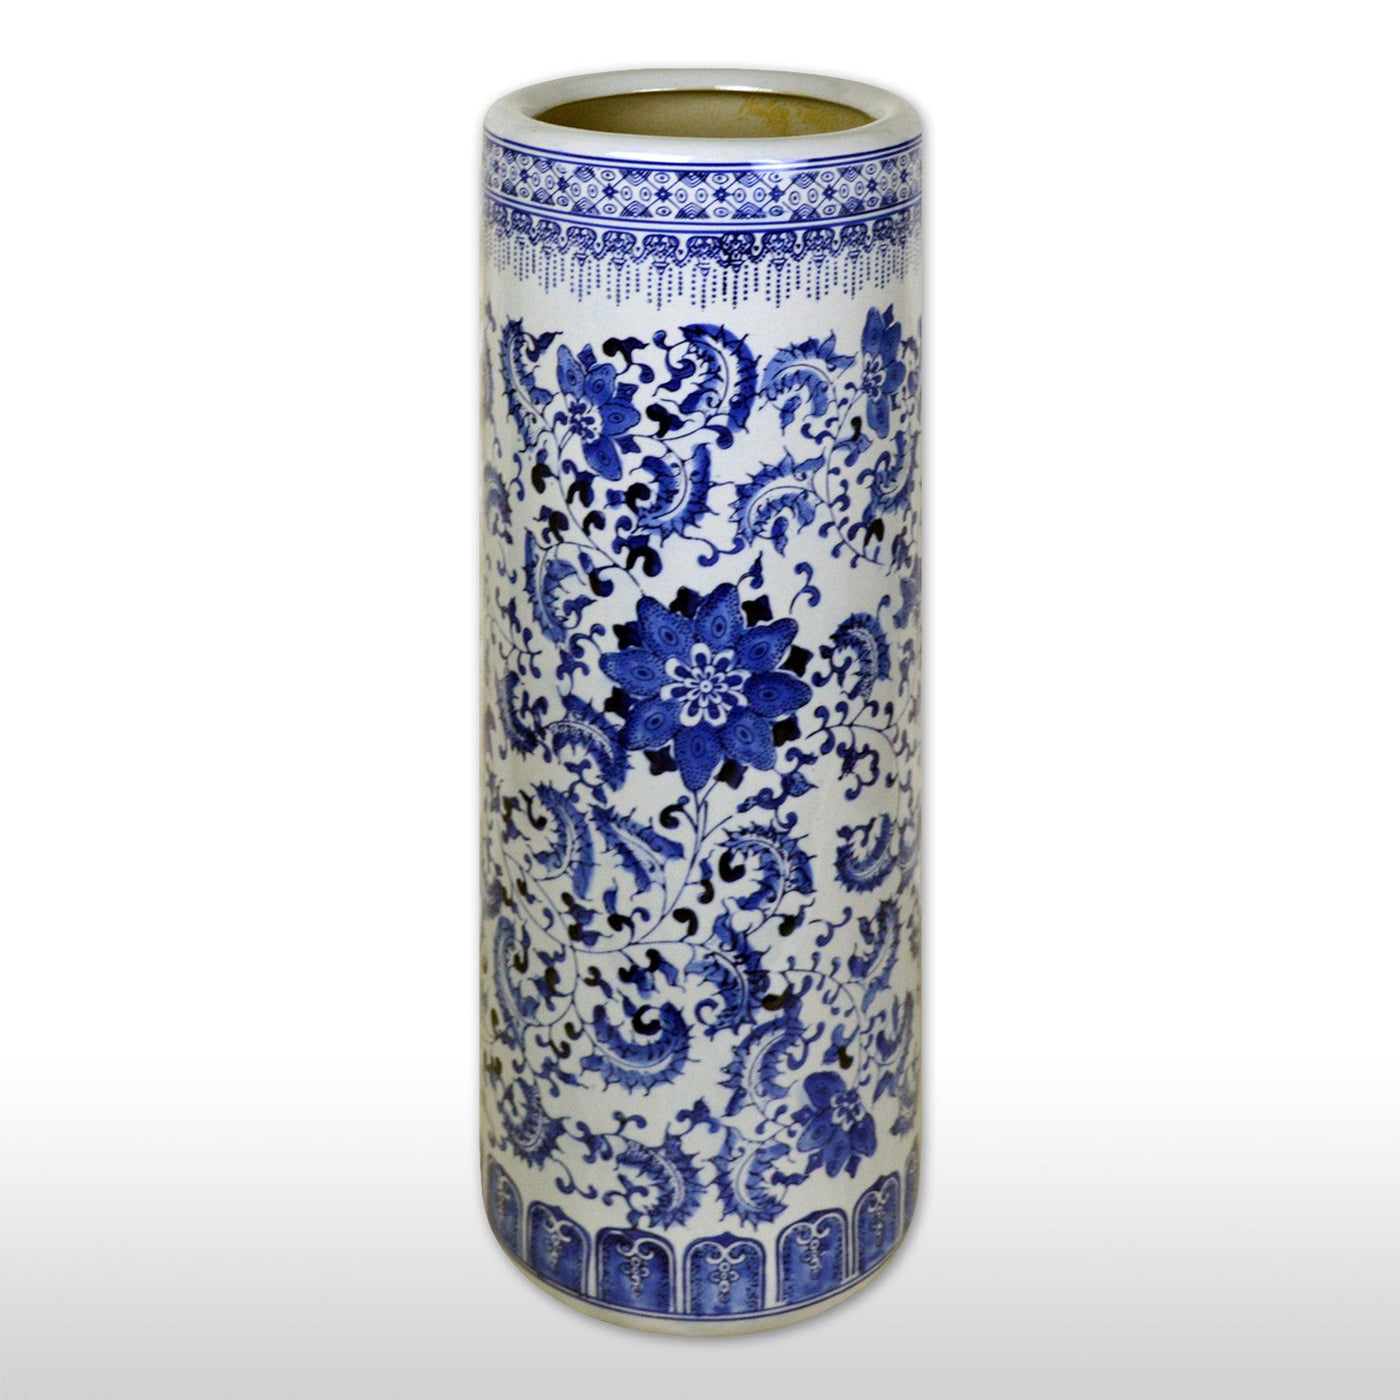 Oriental porcelain umbrella stand in blue and white 24 floral vases jars featured products 24 chinese classic blue and white porcelain umbrella reviewsmspy